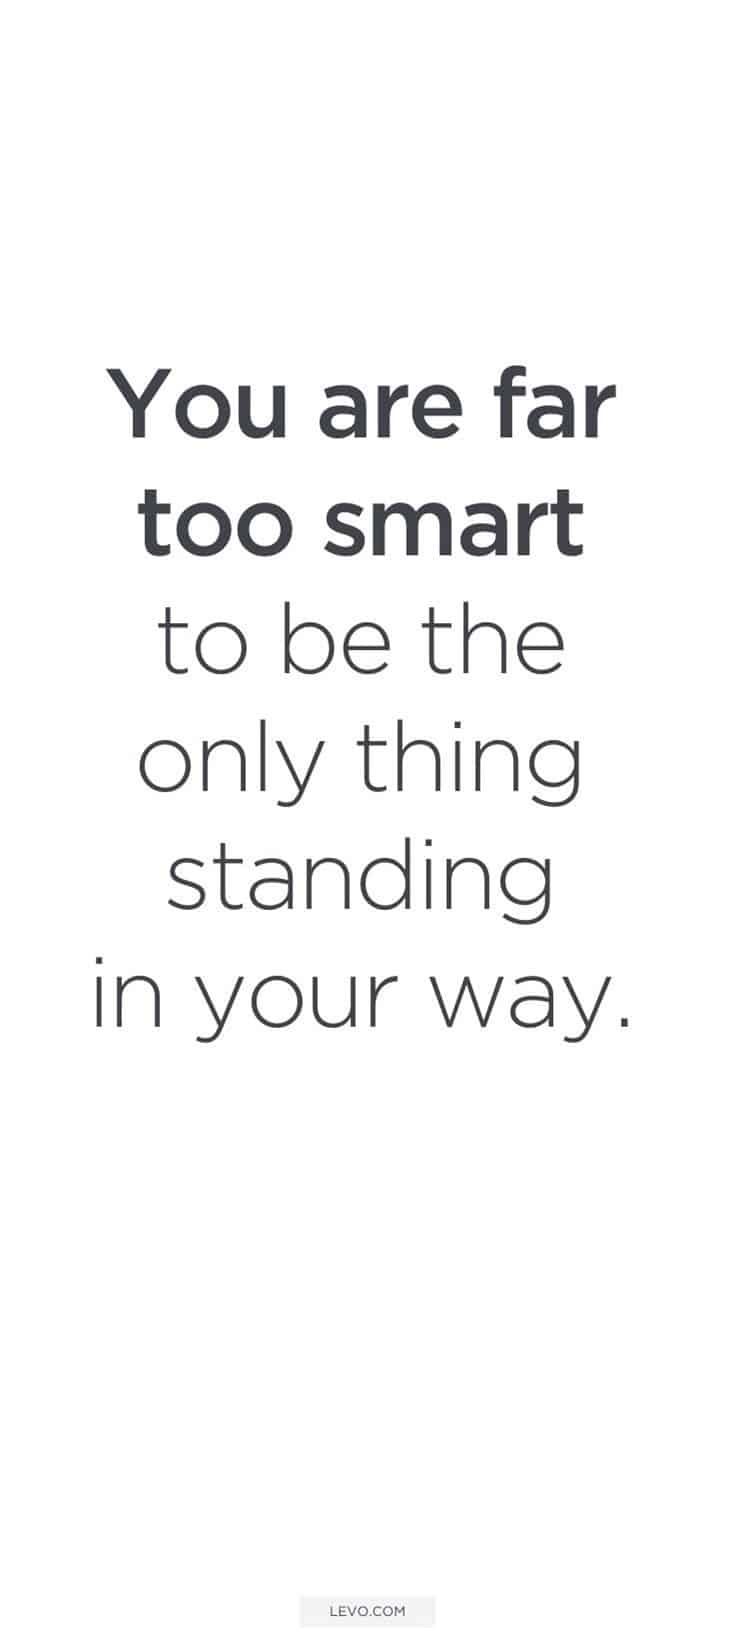 577 Motivational Inspirational Quotes About Life 365